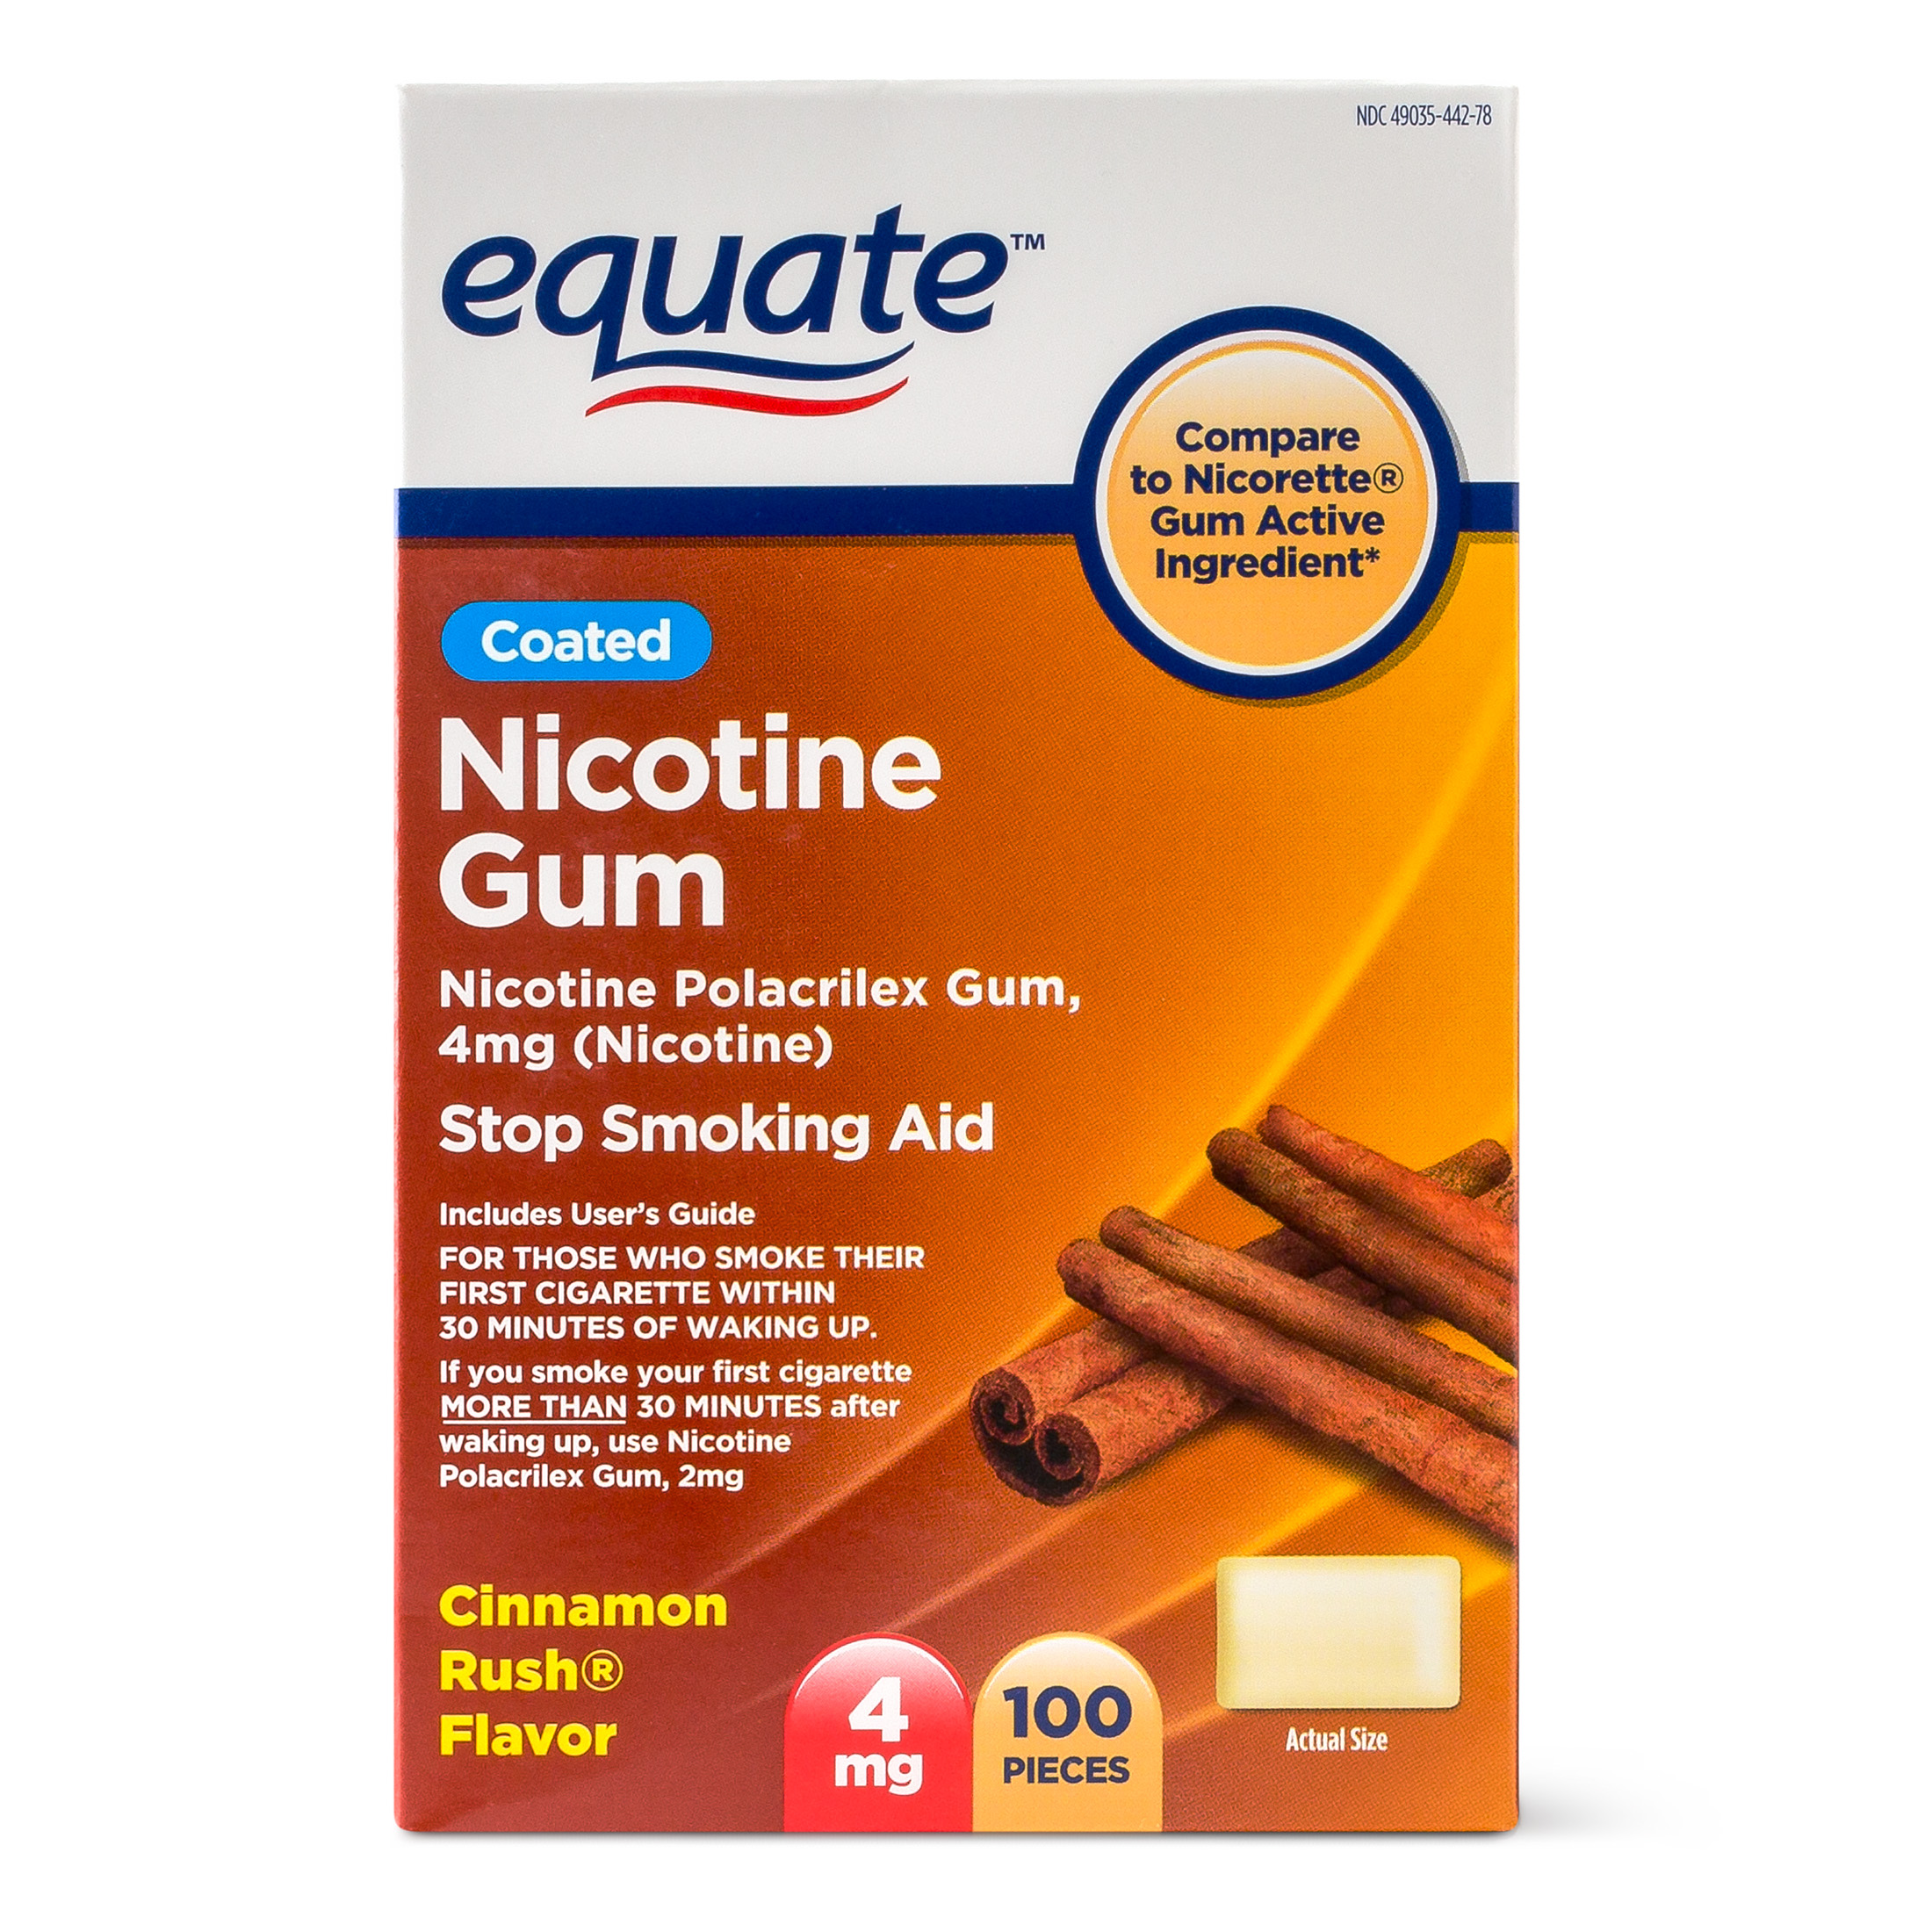 Equate Coated Nicotine Gum, Cinnamon Rush Flavor, 4 mg, 100 Ct